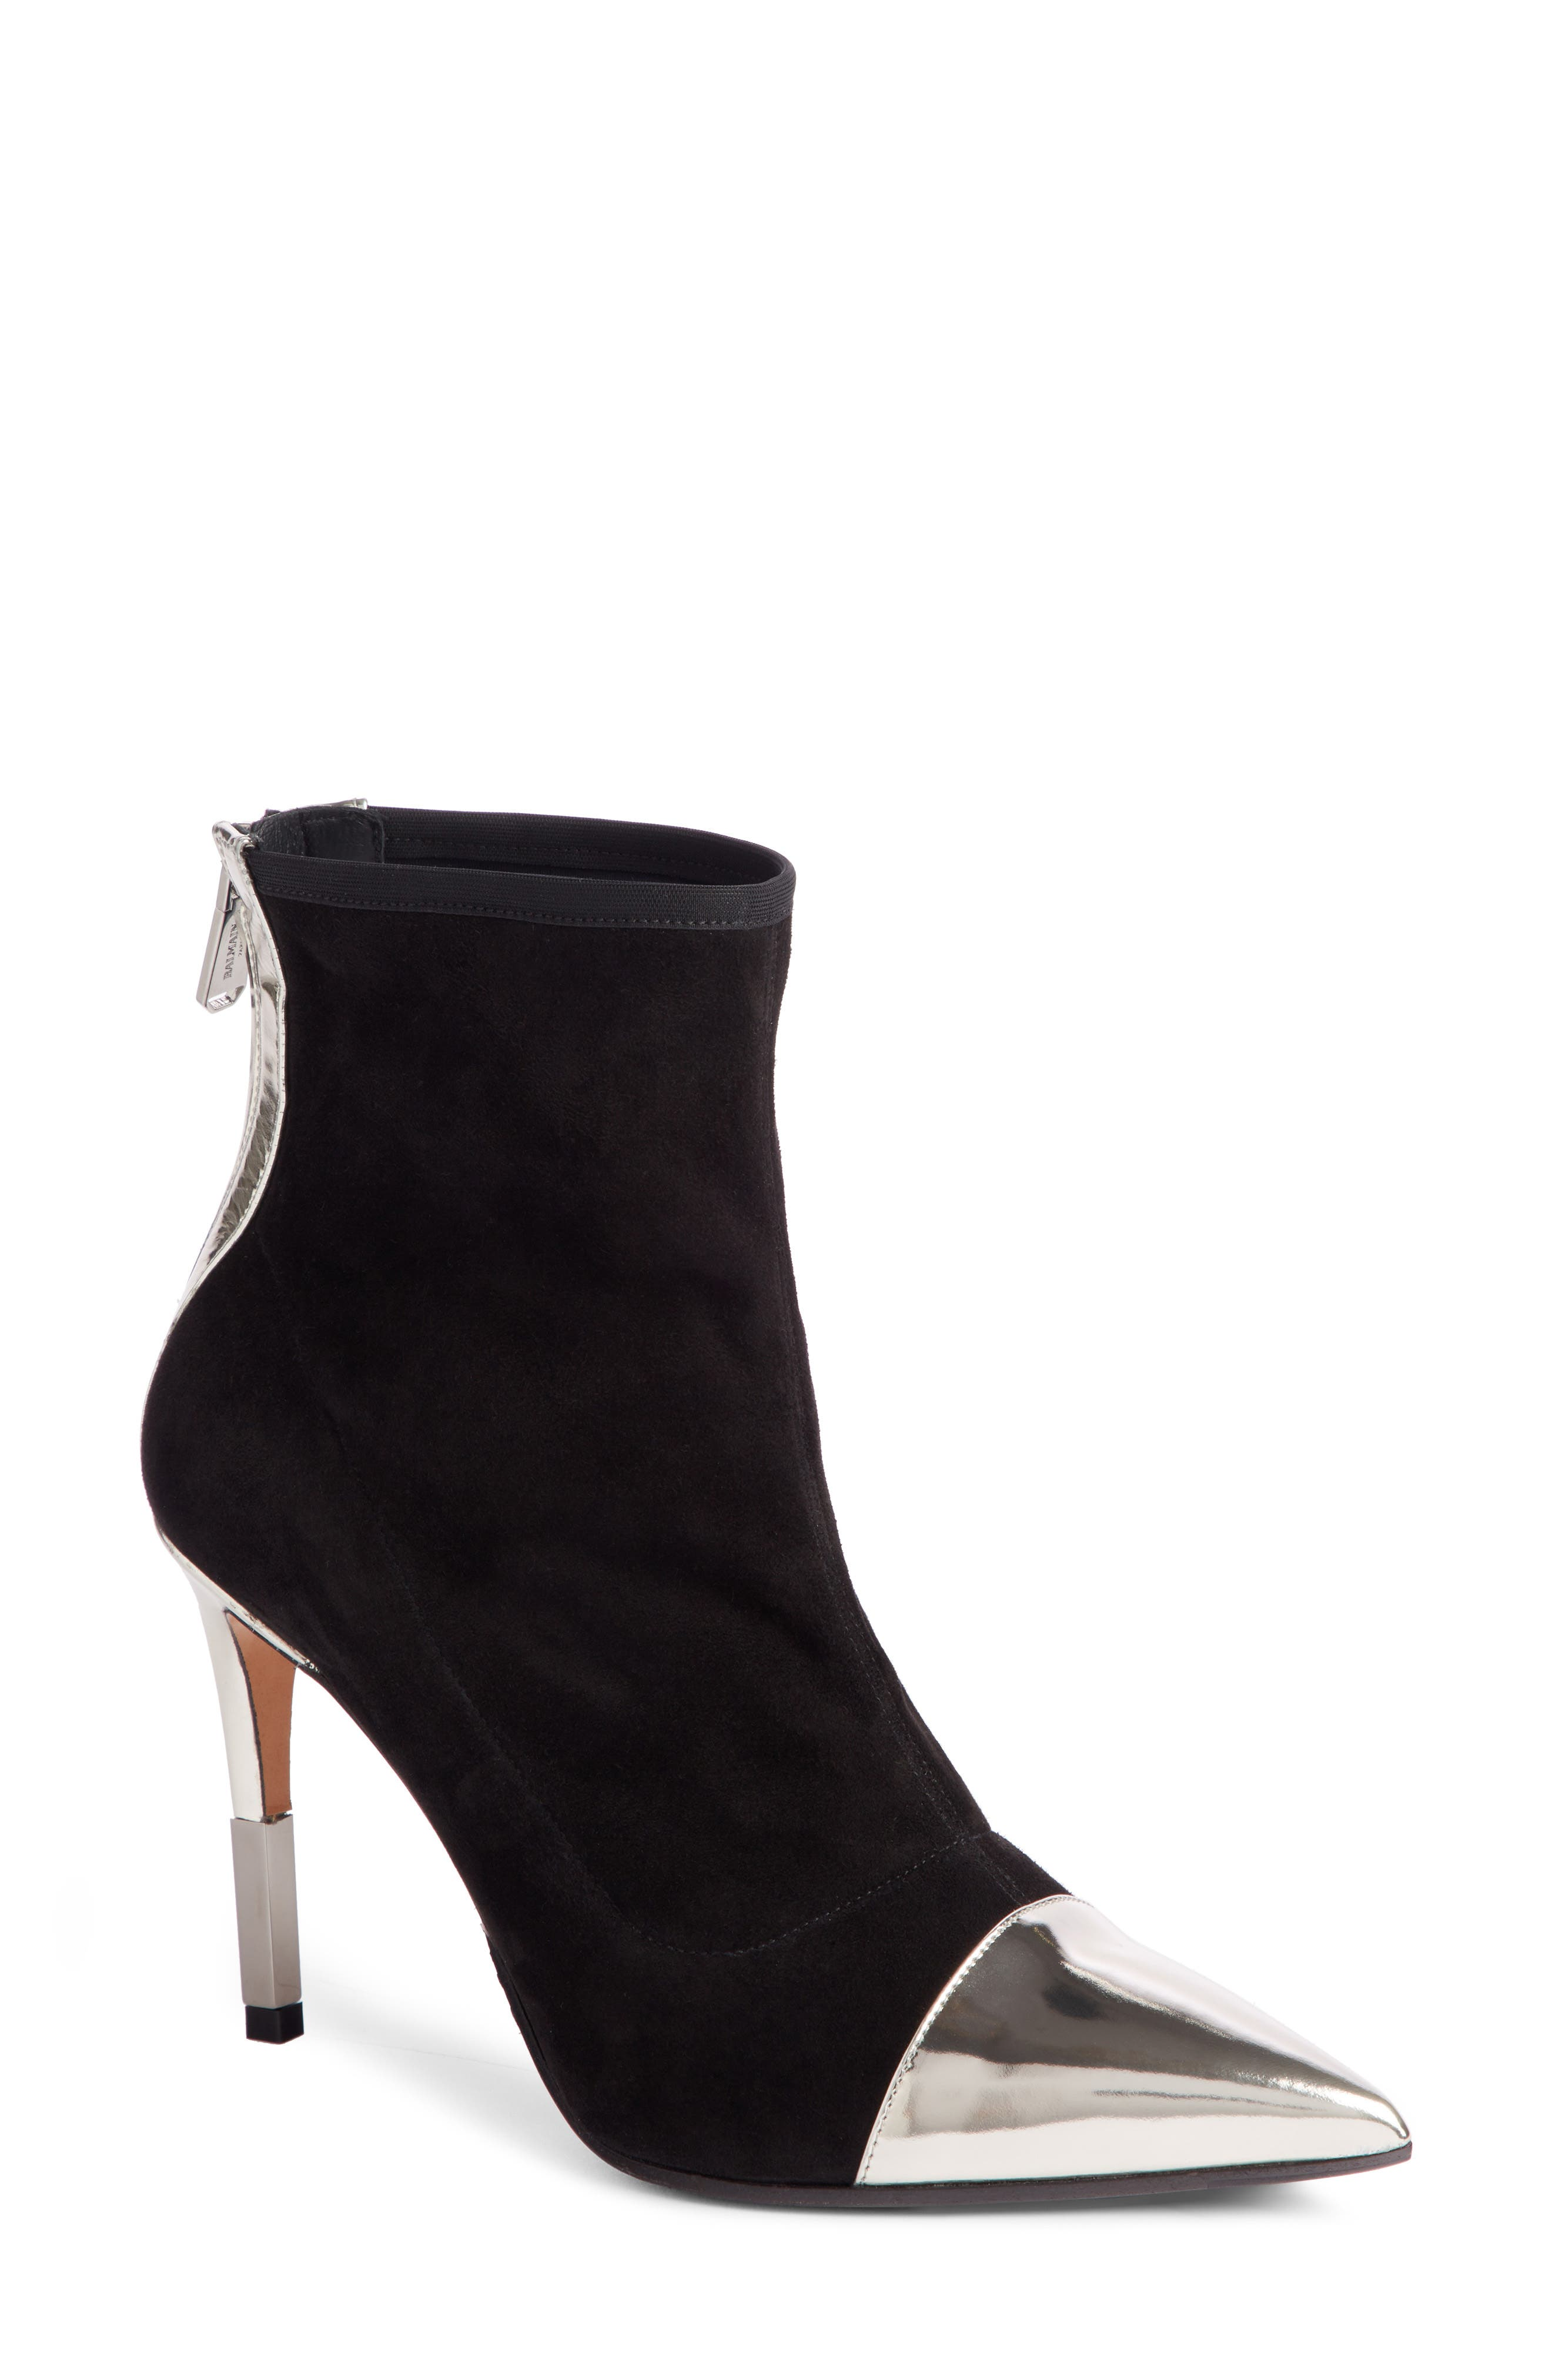 Blair Pointy Toe Bootie,                         Main,                         color, Black/ Silver